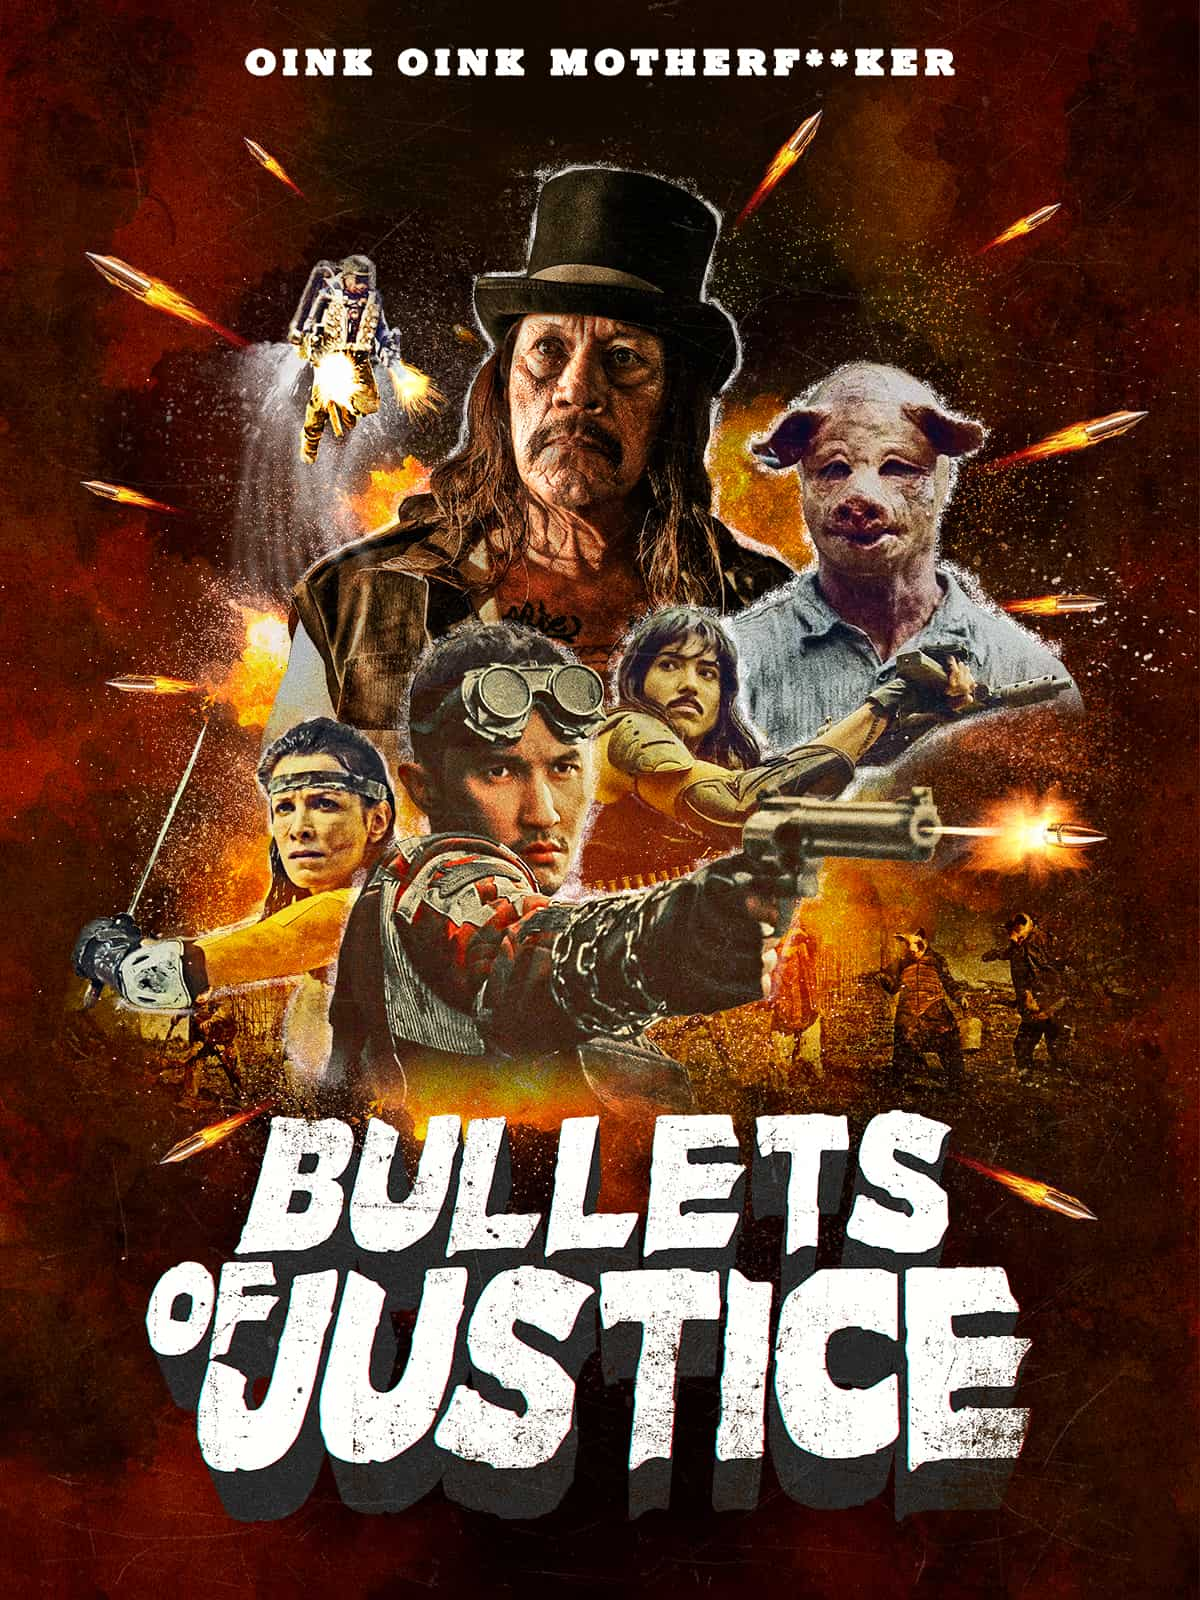 Danny Trejo Battles Mutant Pig-Soldiers in Exploitation Epic BULLETS OF JUSTICE 2